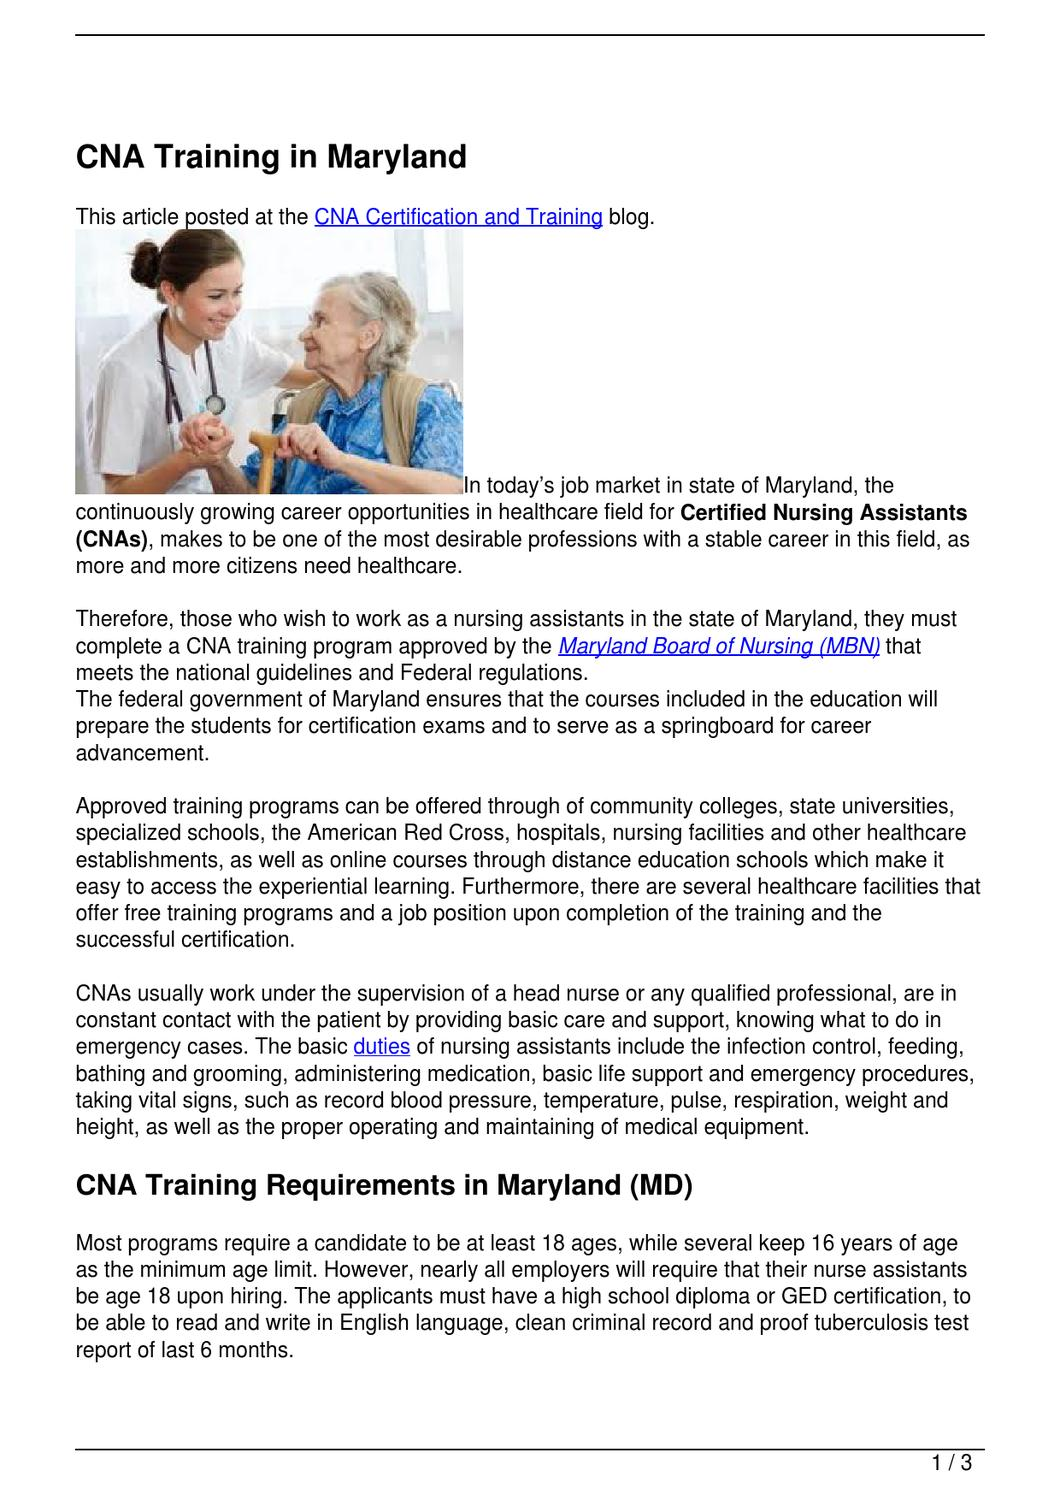 Cna training in maryland by becky vallejo issuu xflitez Choice Image